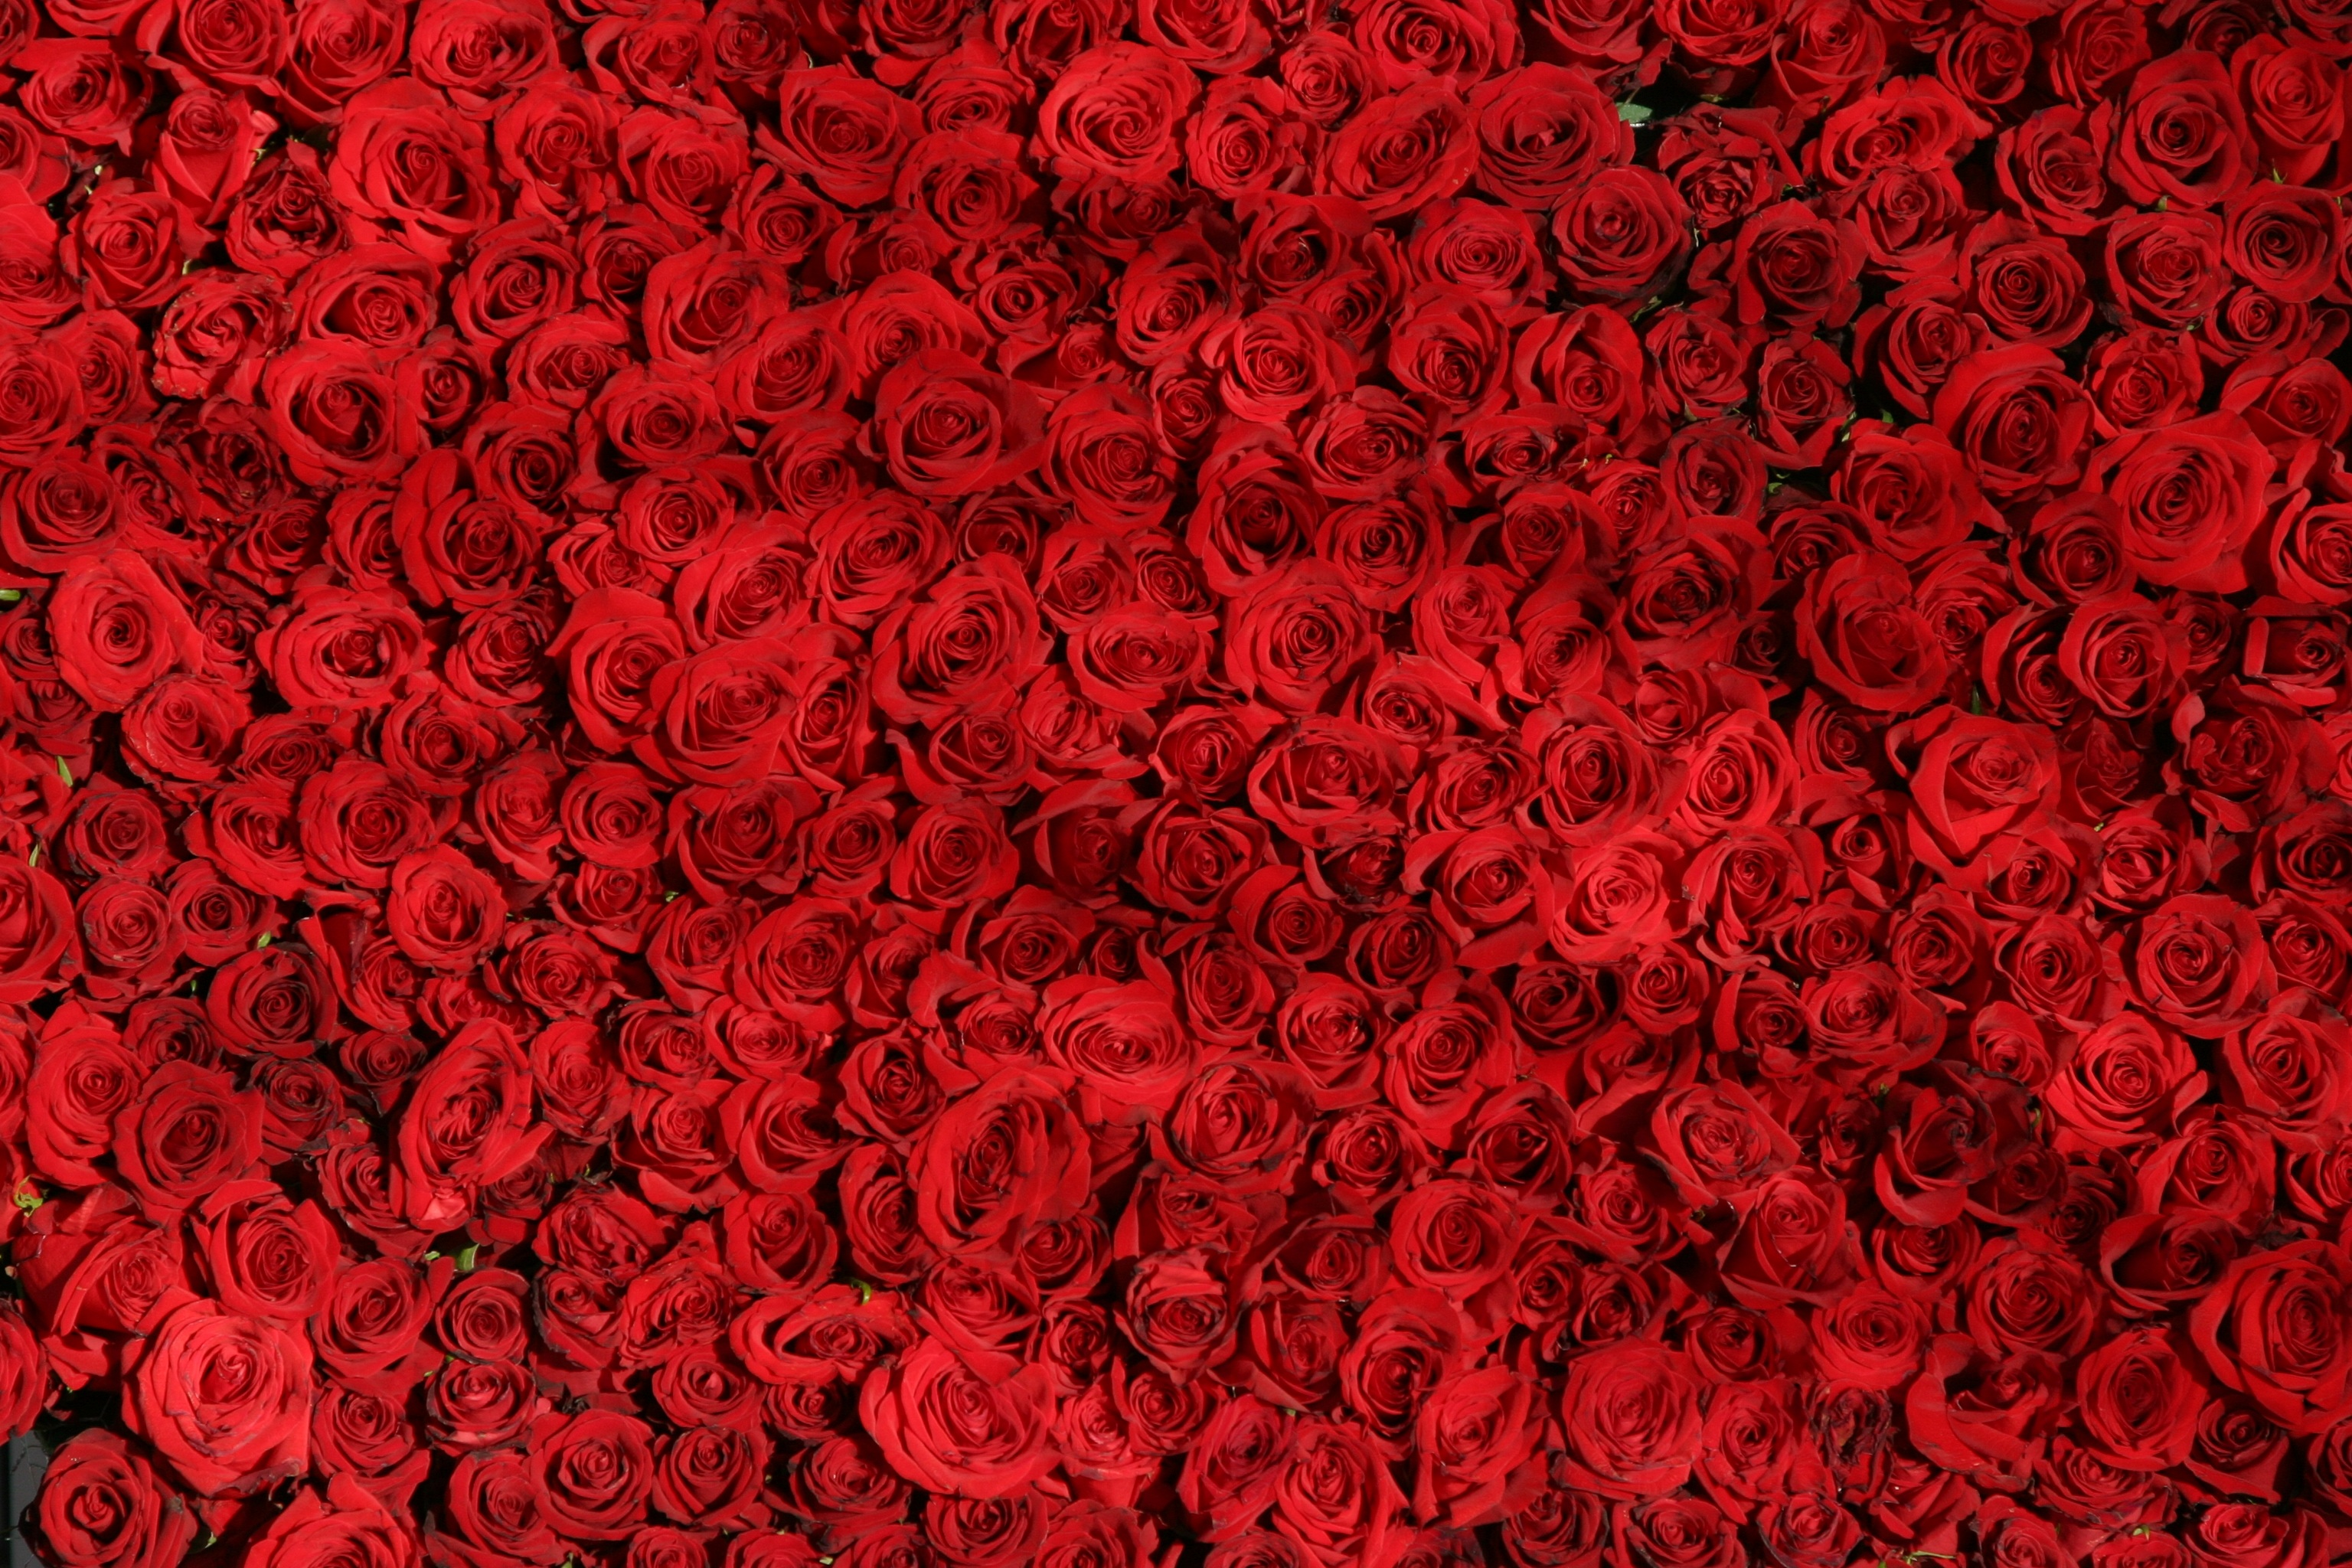 rose-roses-flowers-red-54320.jpeg (3072×2048)